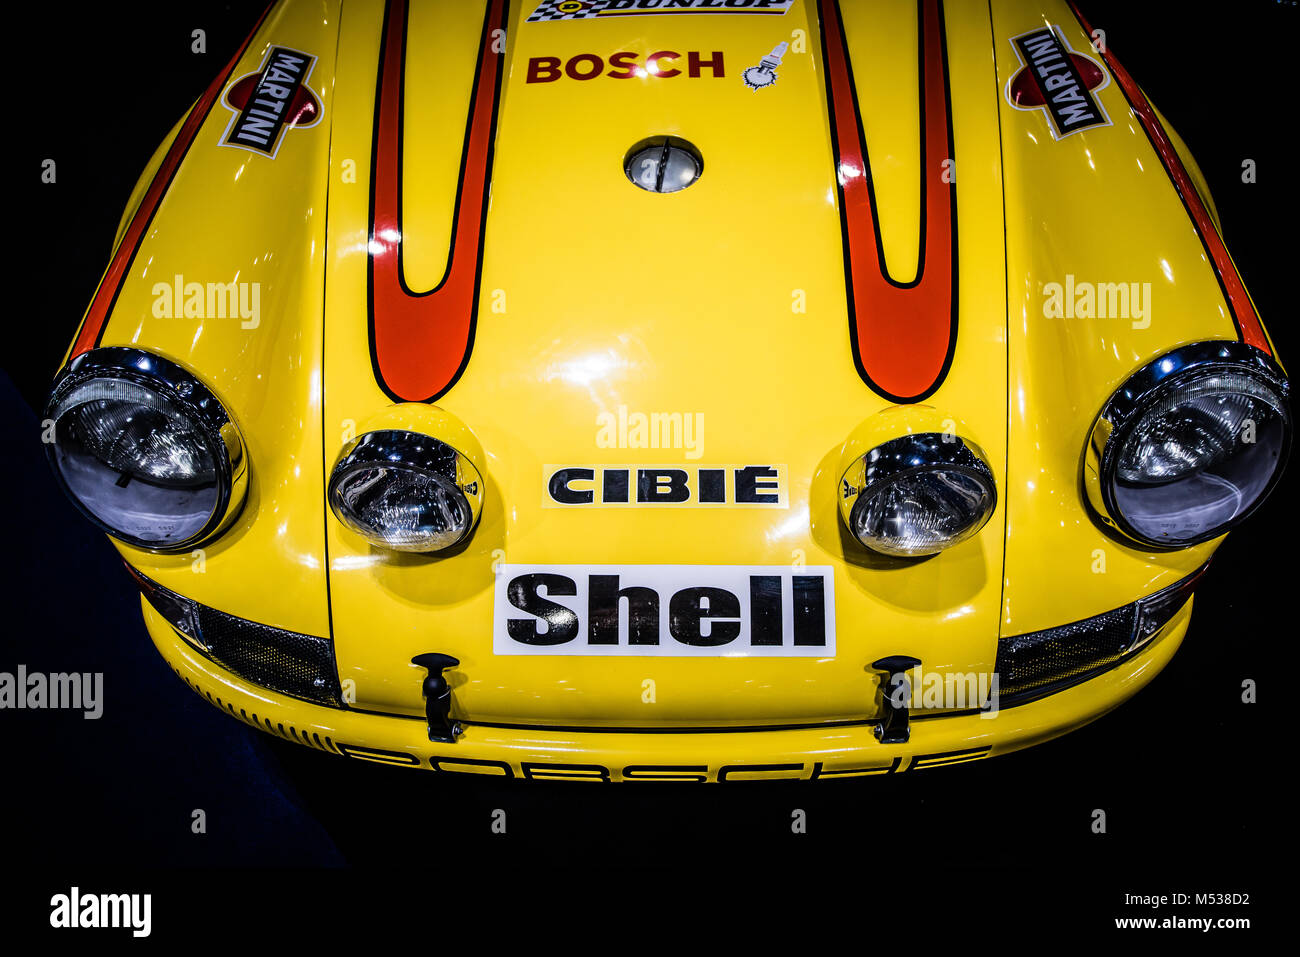 Historic Racing Porsche 911 on display at The London Classic Car Show & Historic Motorsport International Show - Stock Image